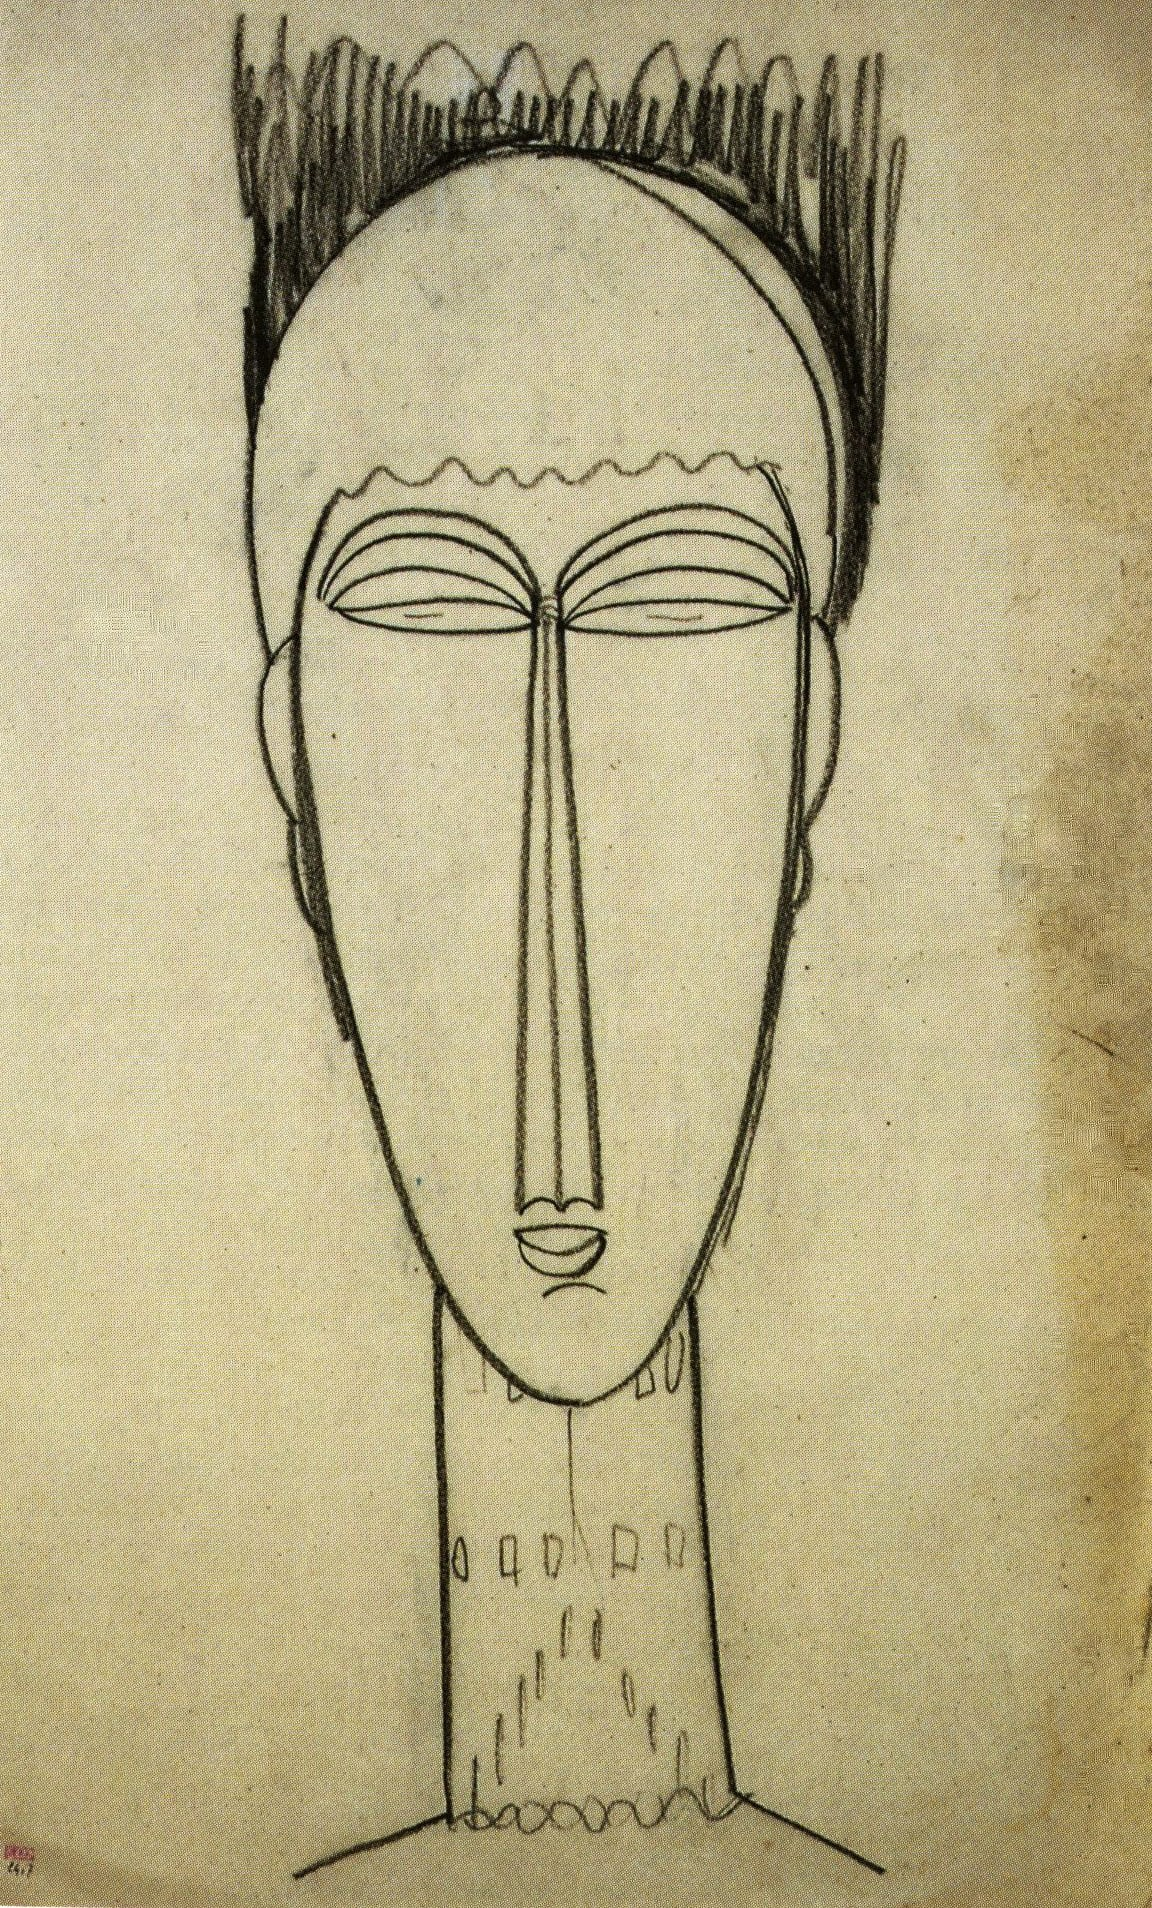 EARLY DRAWINGS BY AMEDEO MODIGLIANI ON VIEW FOR THE FIRST TIME IN THE U.S. AT THE JEWISH MUSEUM